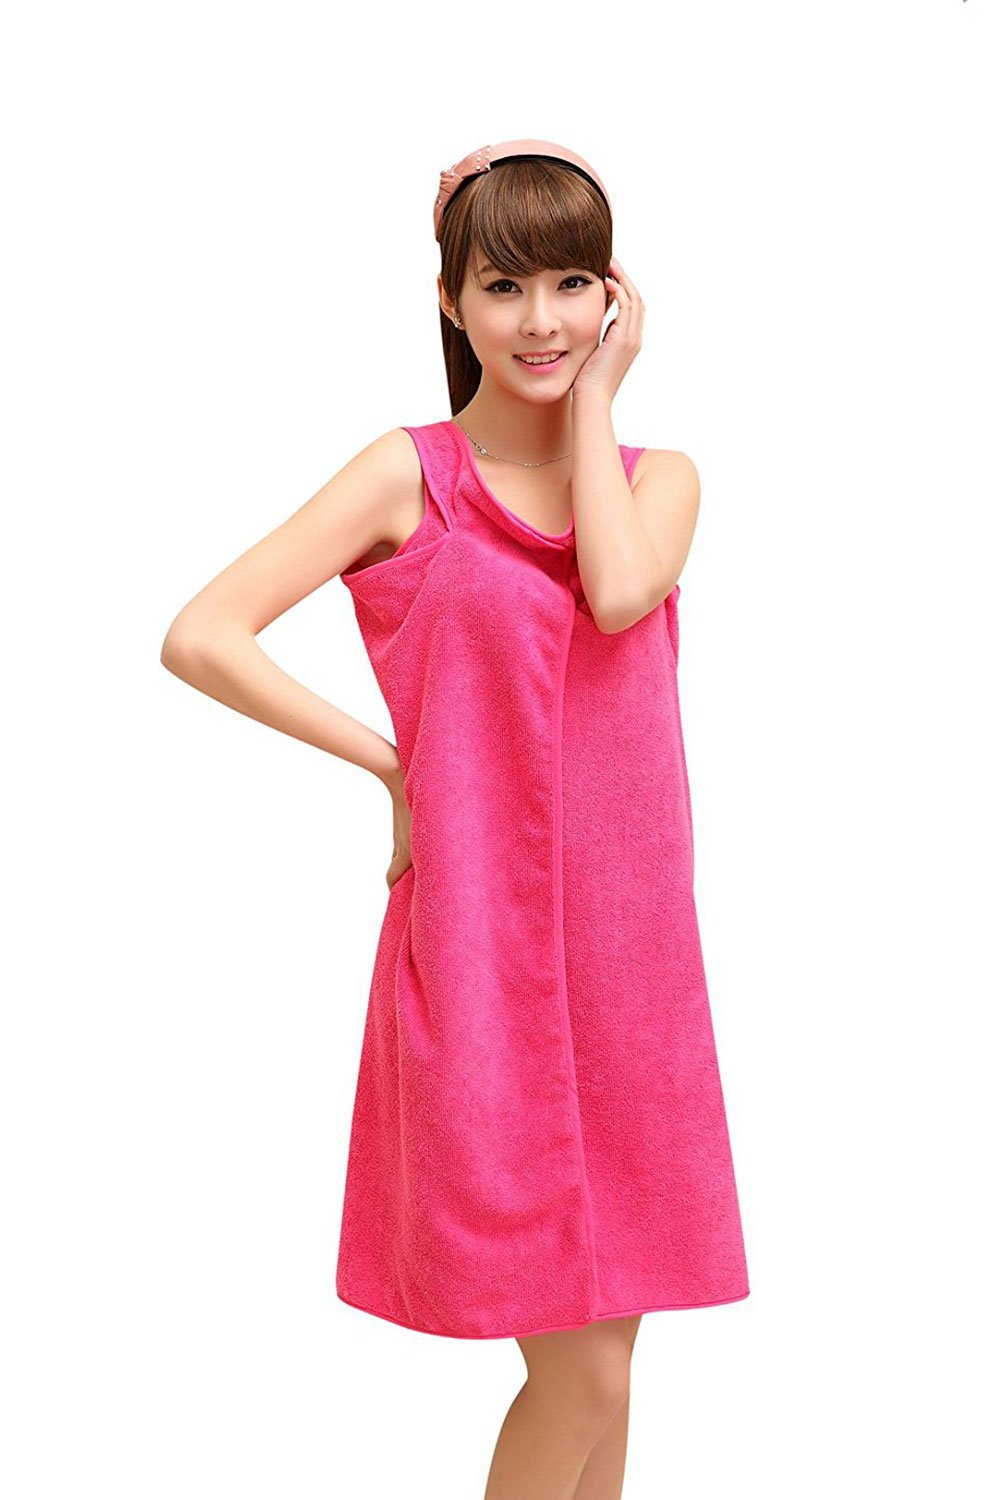 22438faa90 Get Quotations · Daycount Bath Towel Wrap Beach Spa Bathrobes Bath Skirt  Easy Wear Clean Soft Polyster Microfiber Fabric